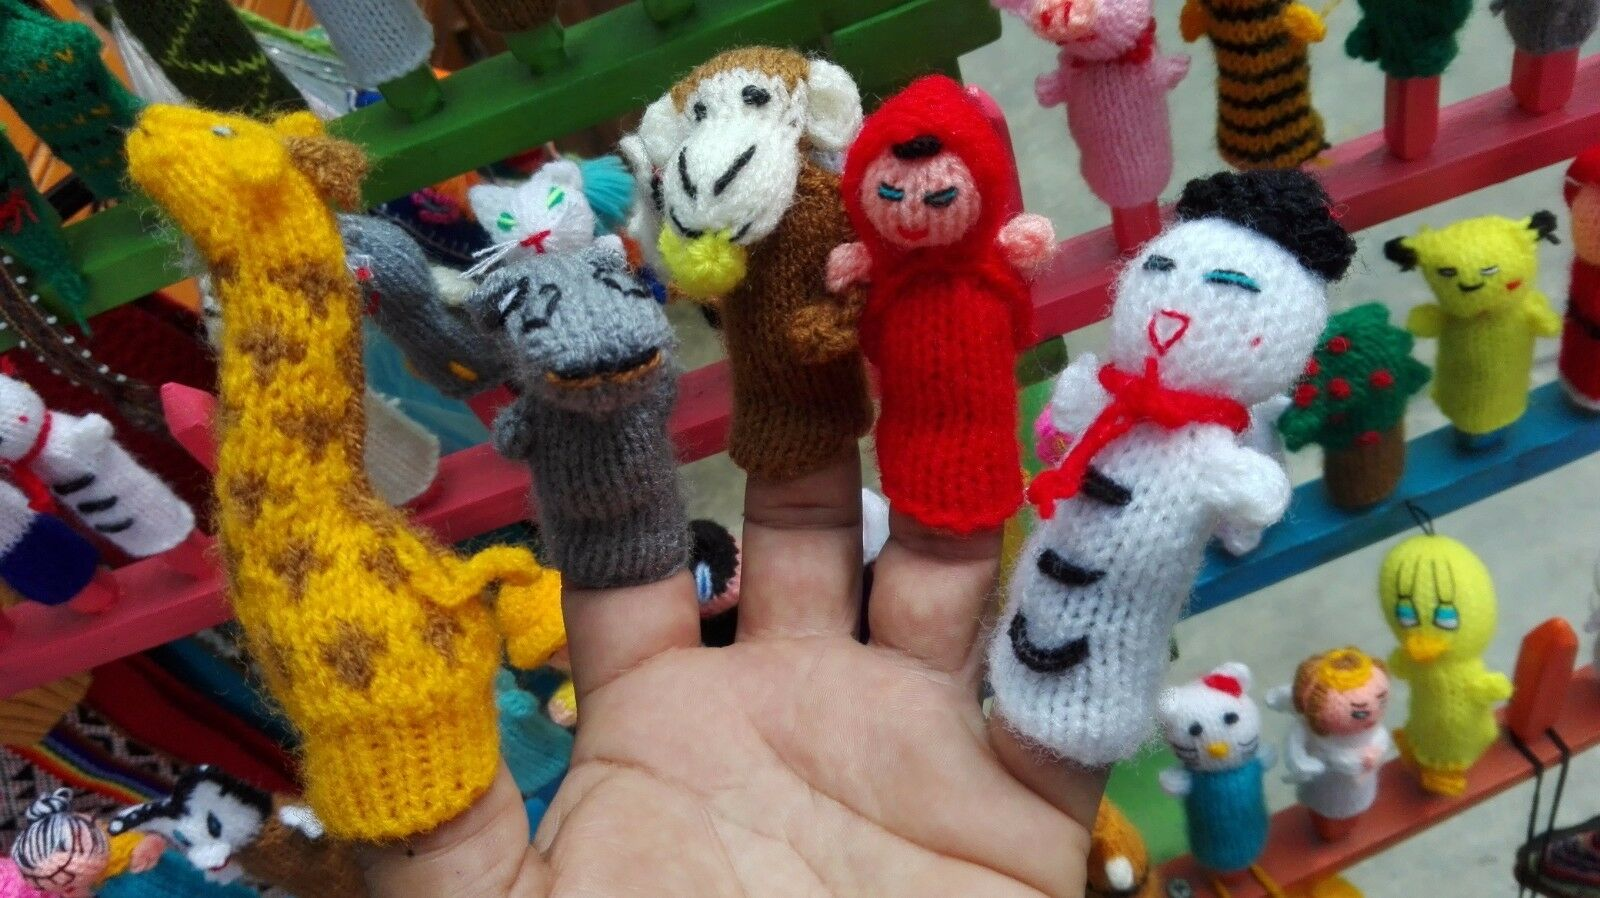 LOT OF 500 FINGER PUPPETS FROM PERU HANDKNITTED (FREE SHIPPING) WE HAVE STORE